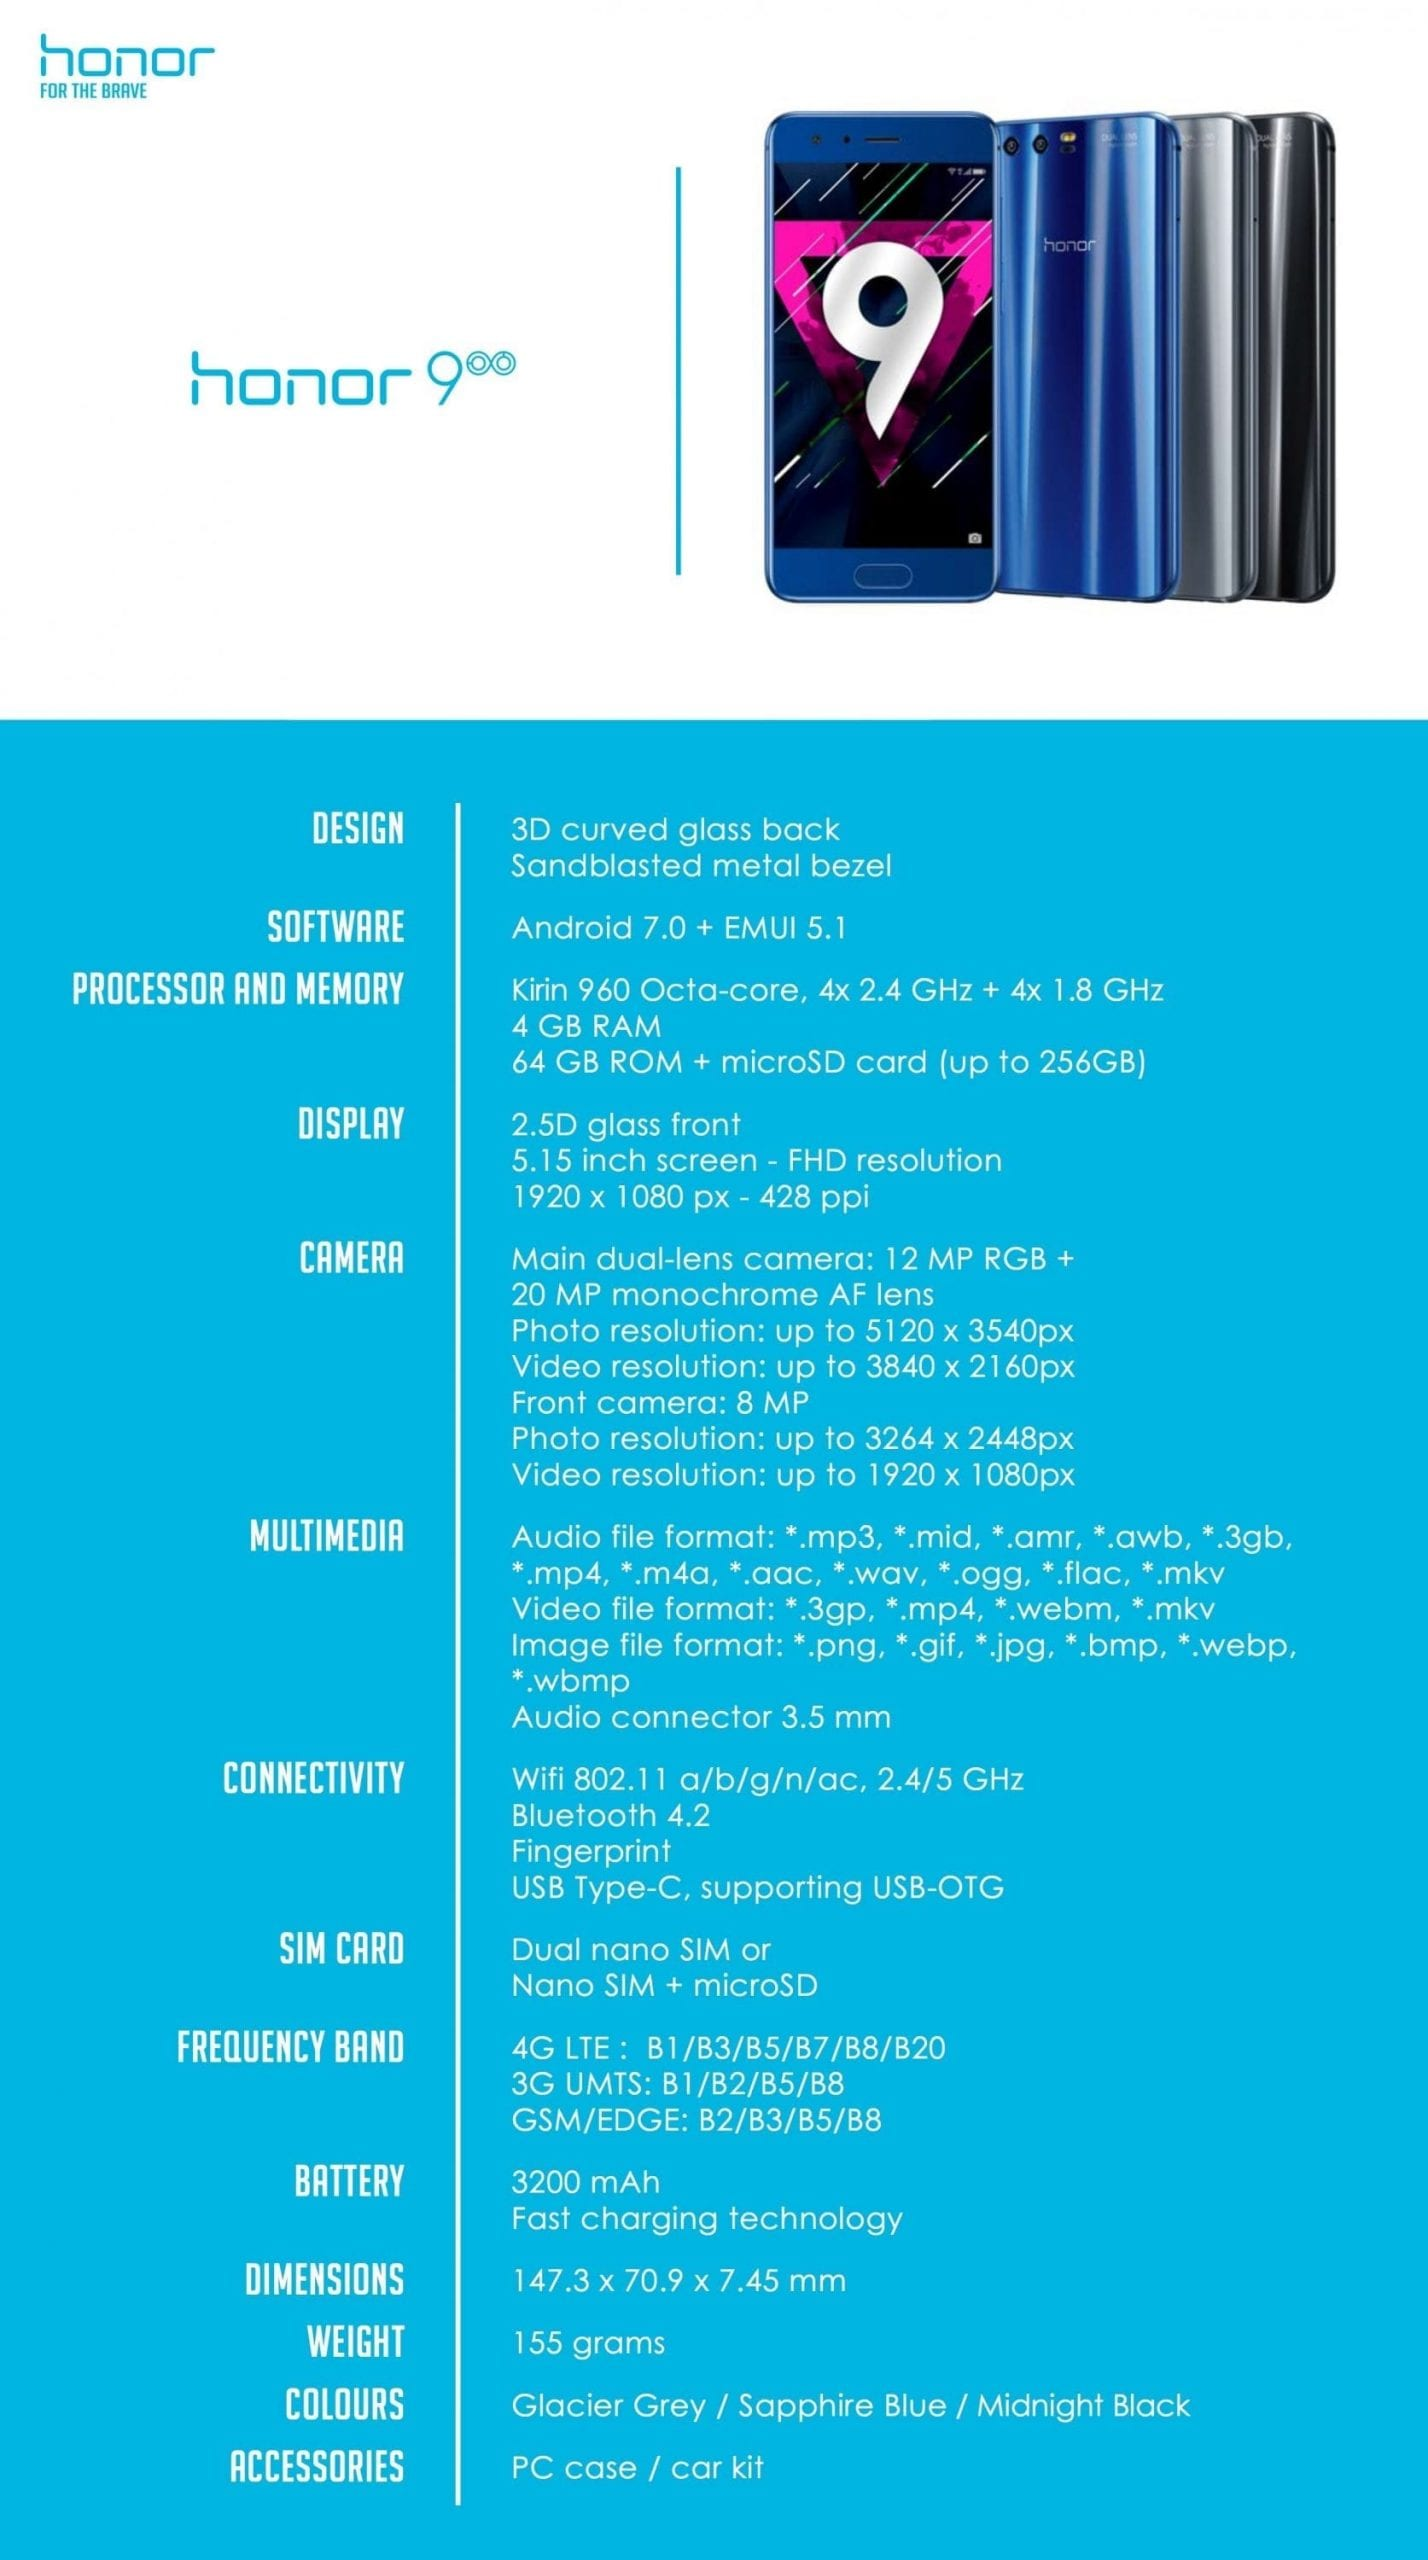 Honor 9 Specs (click for larger image)